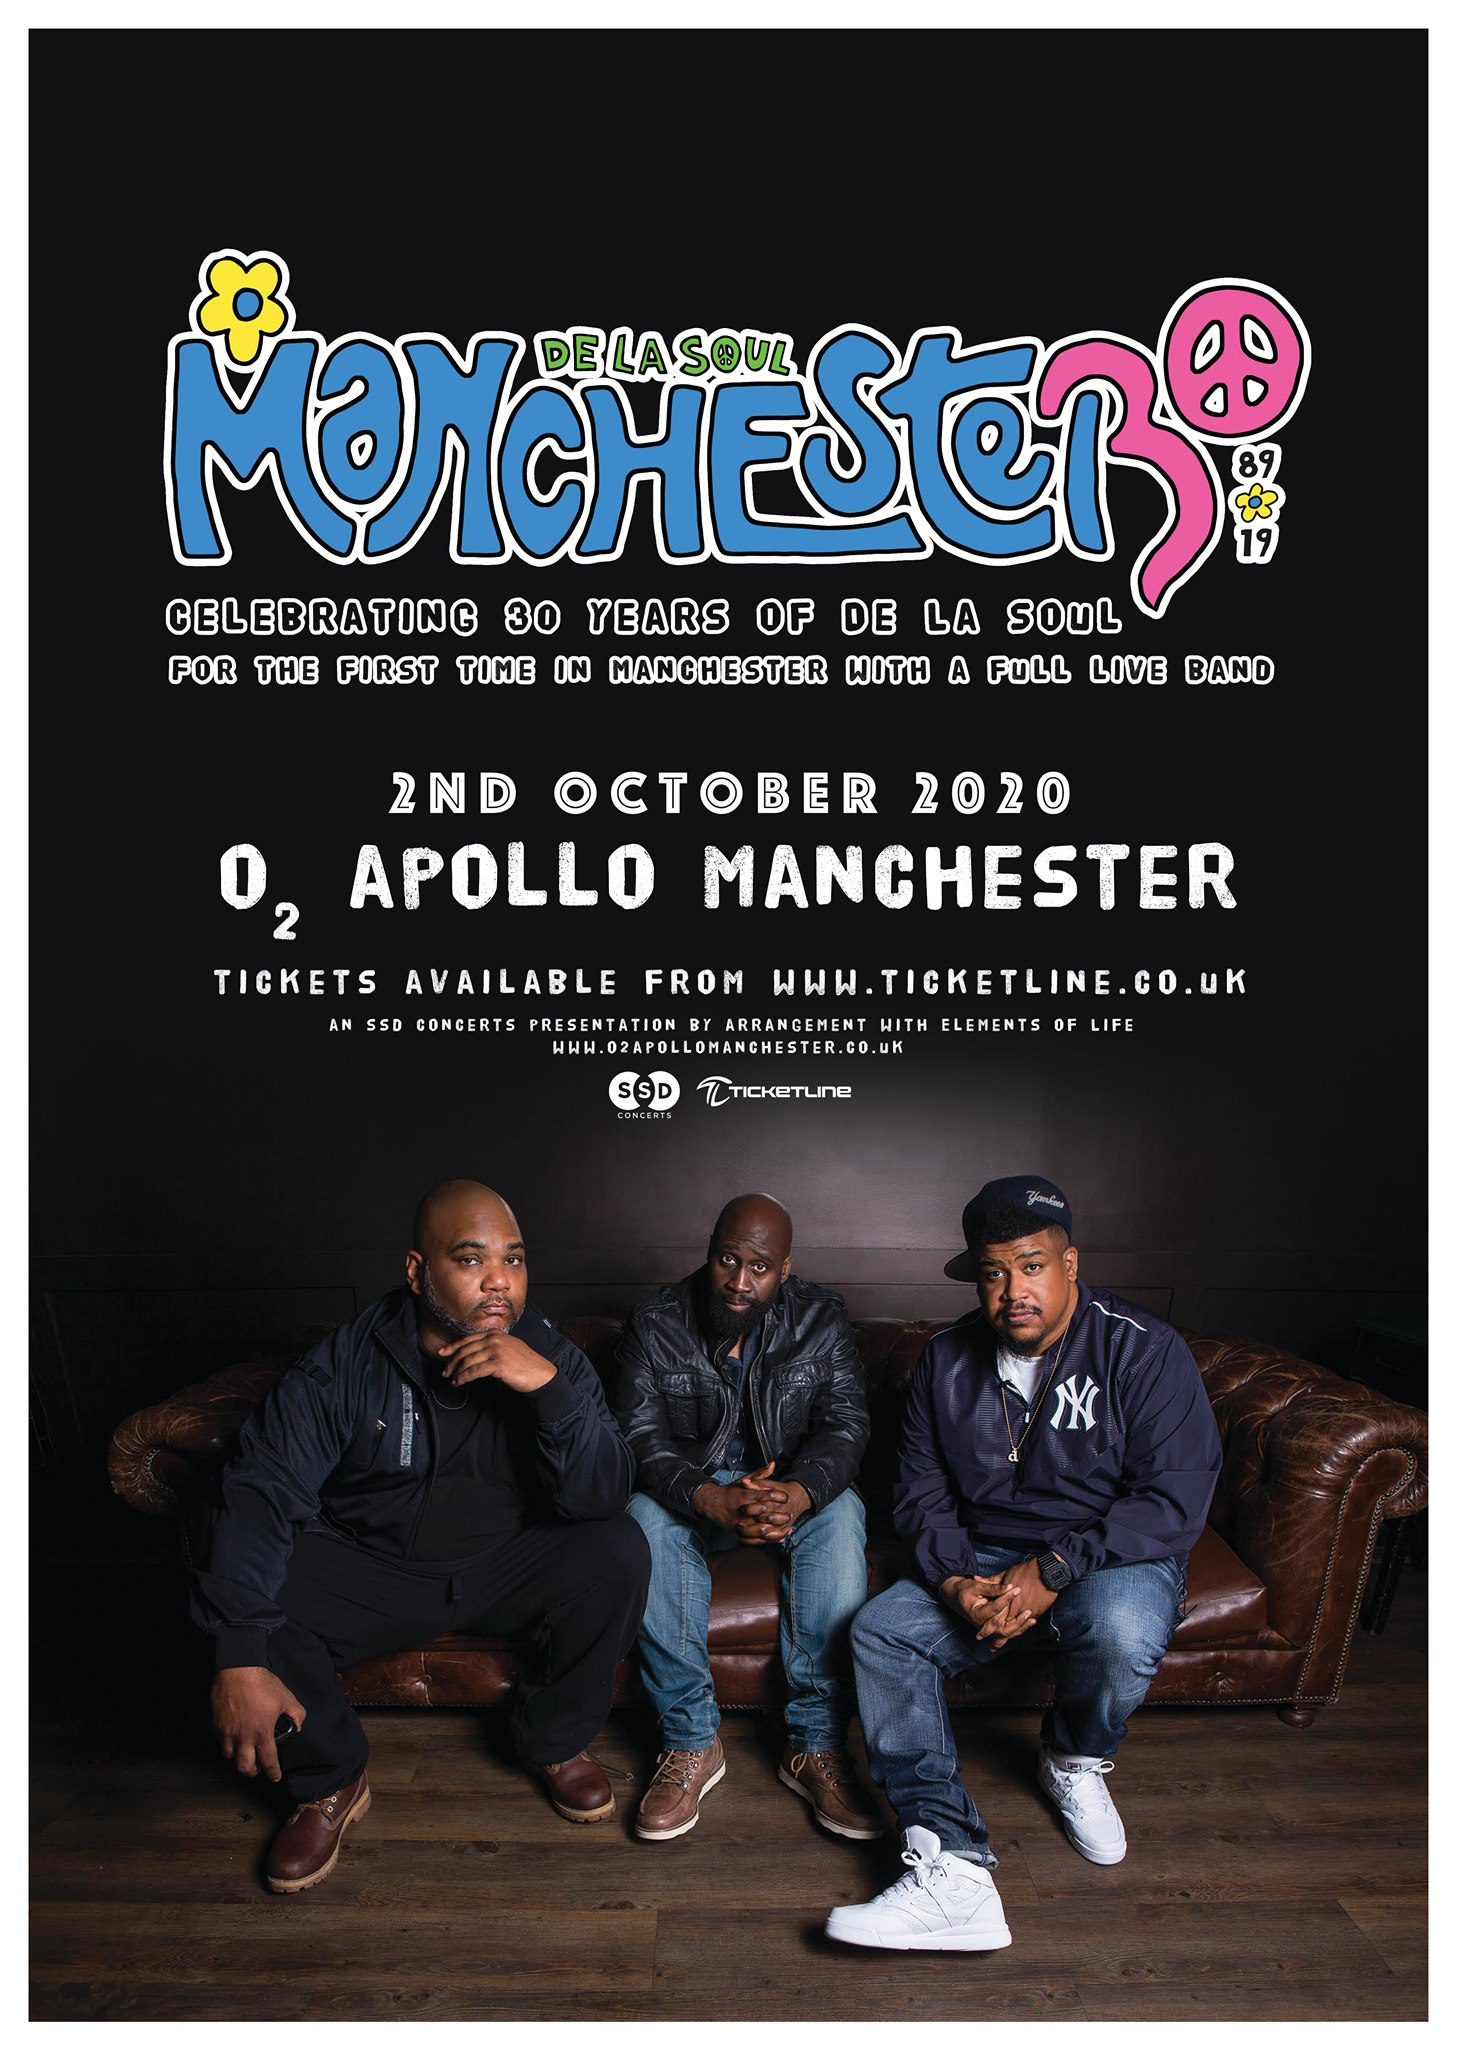 De La Soul at O2 Apollo Manchester